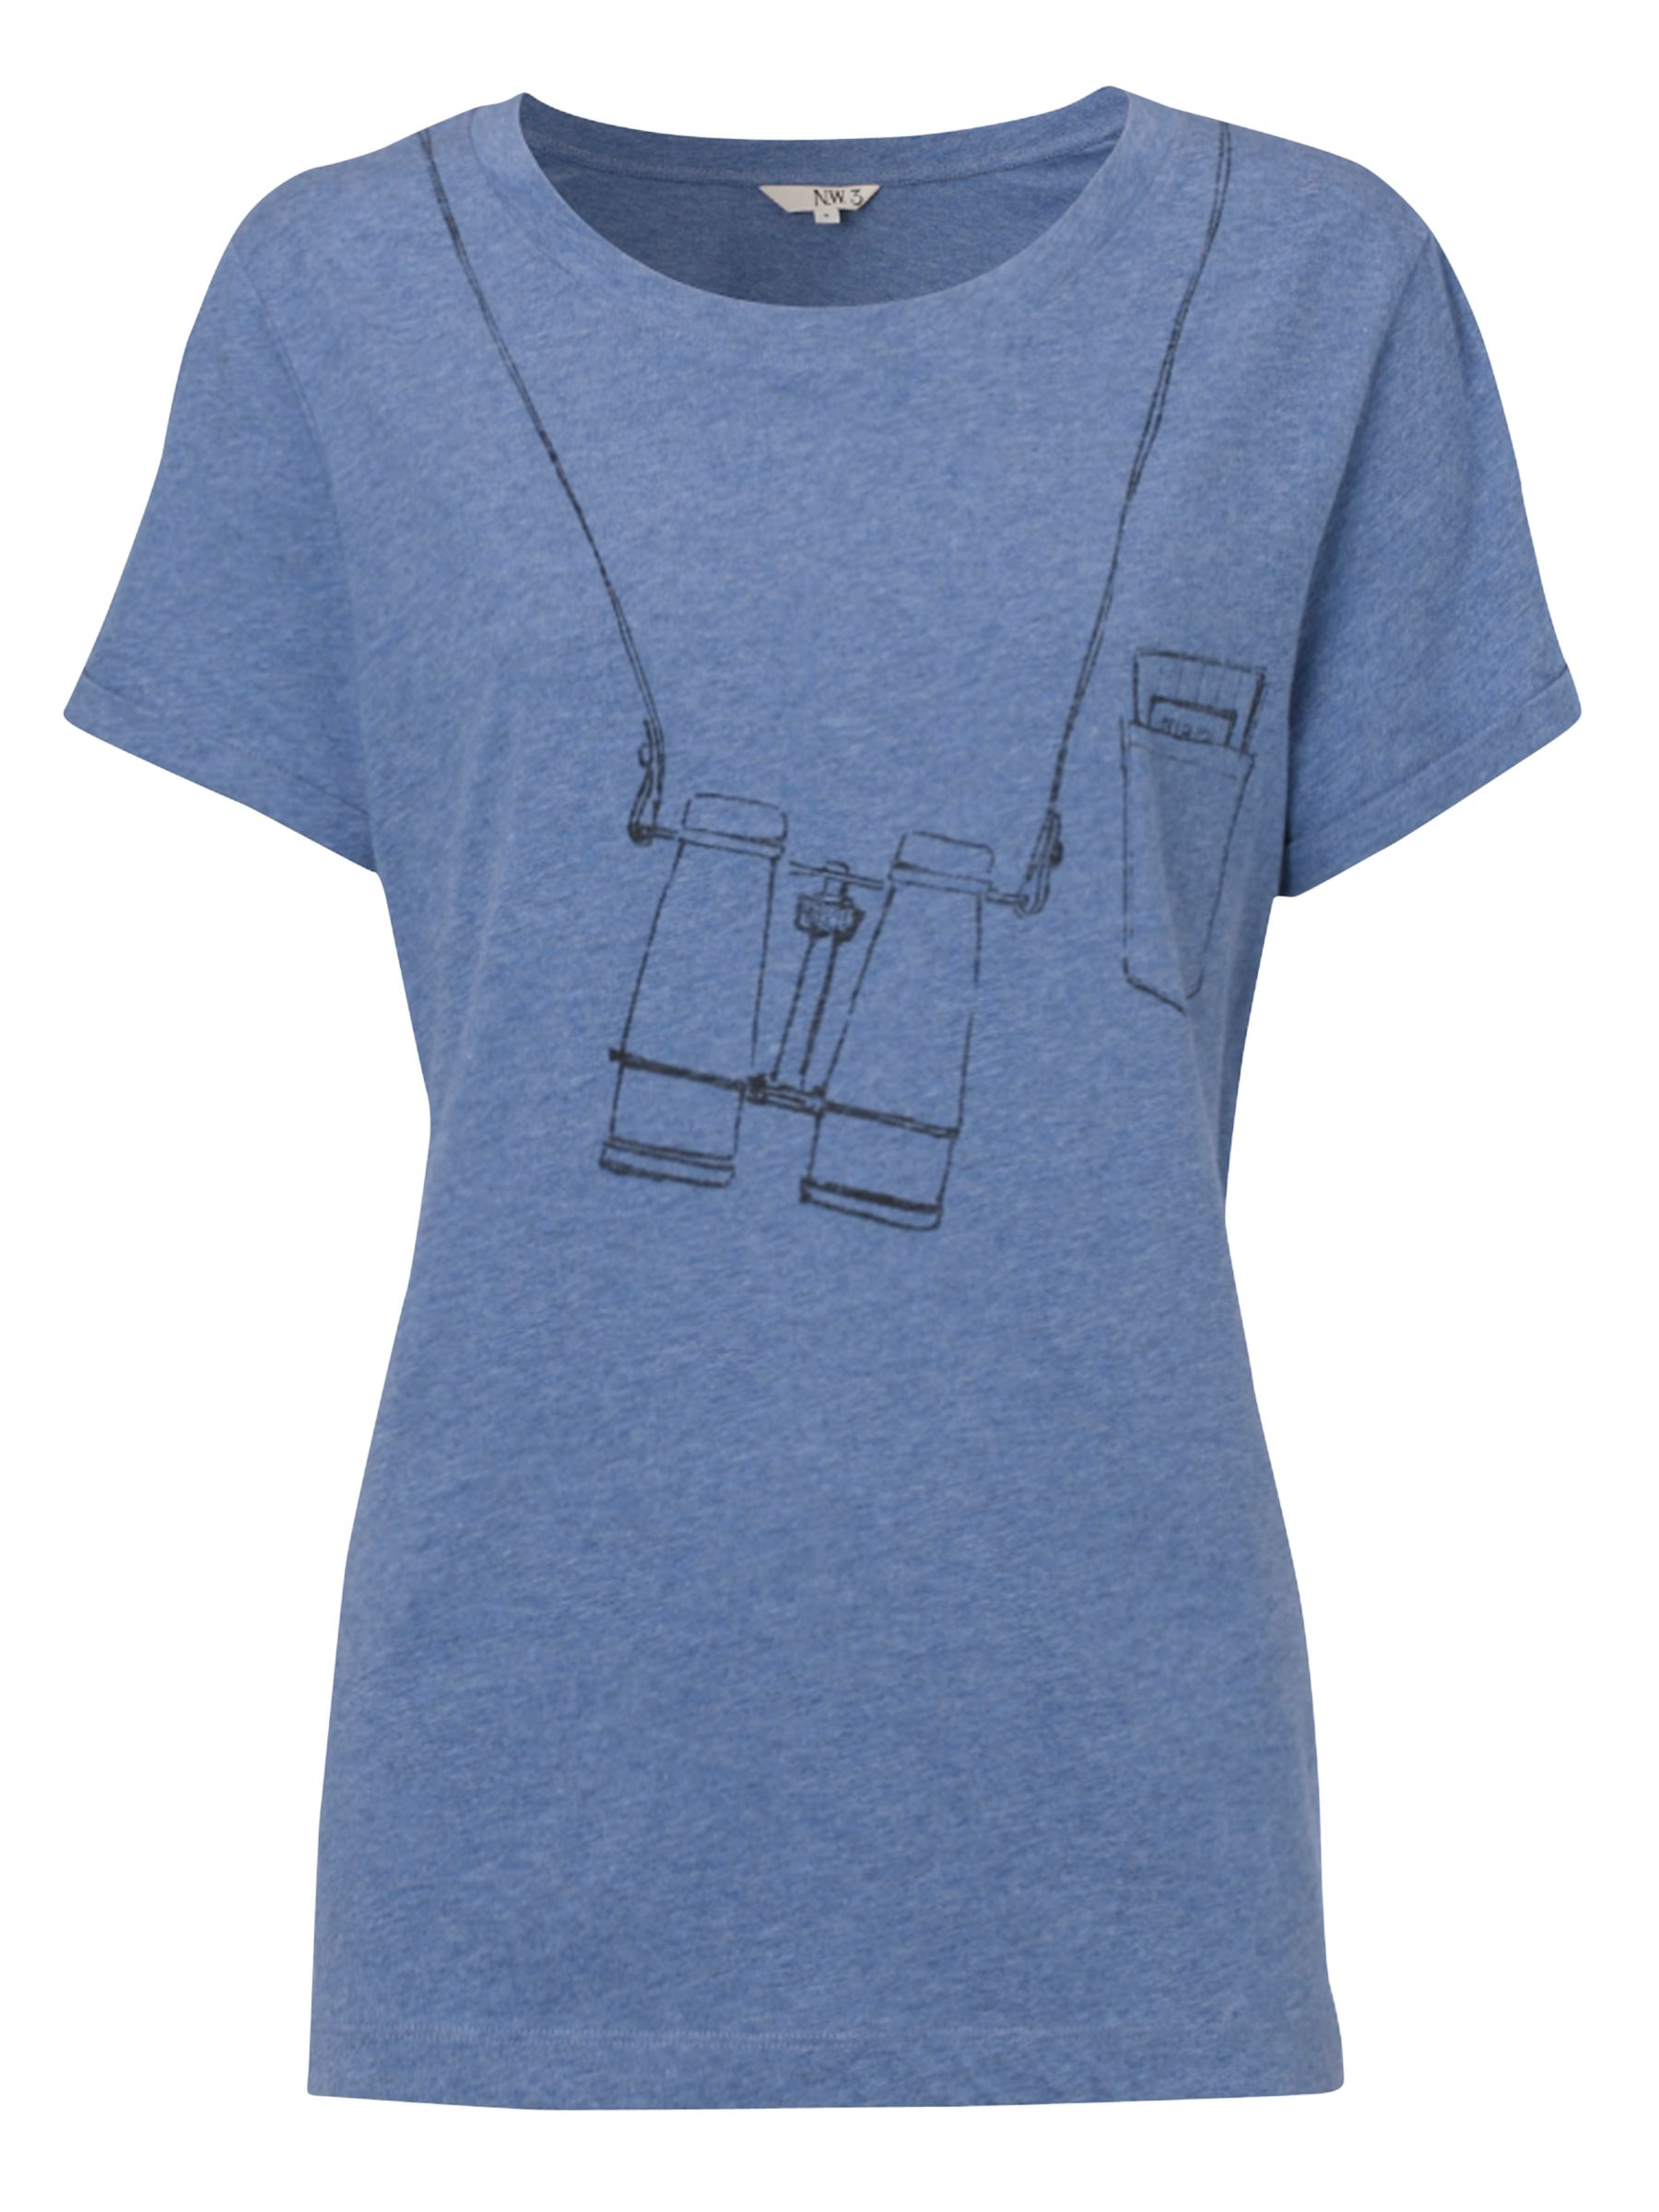 Birdwatcher Cotton T-Shirt, Poseidon Blue